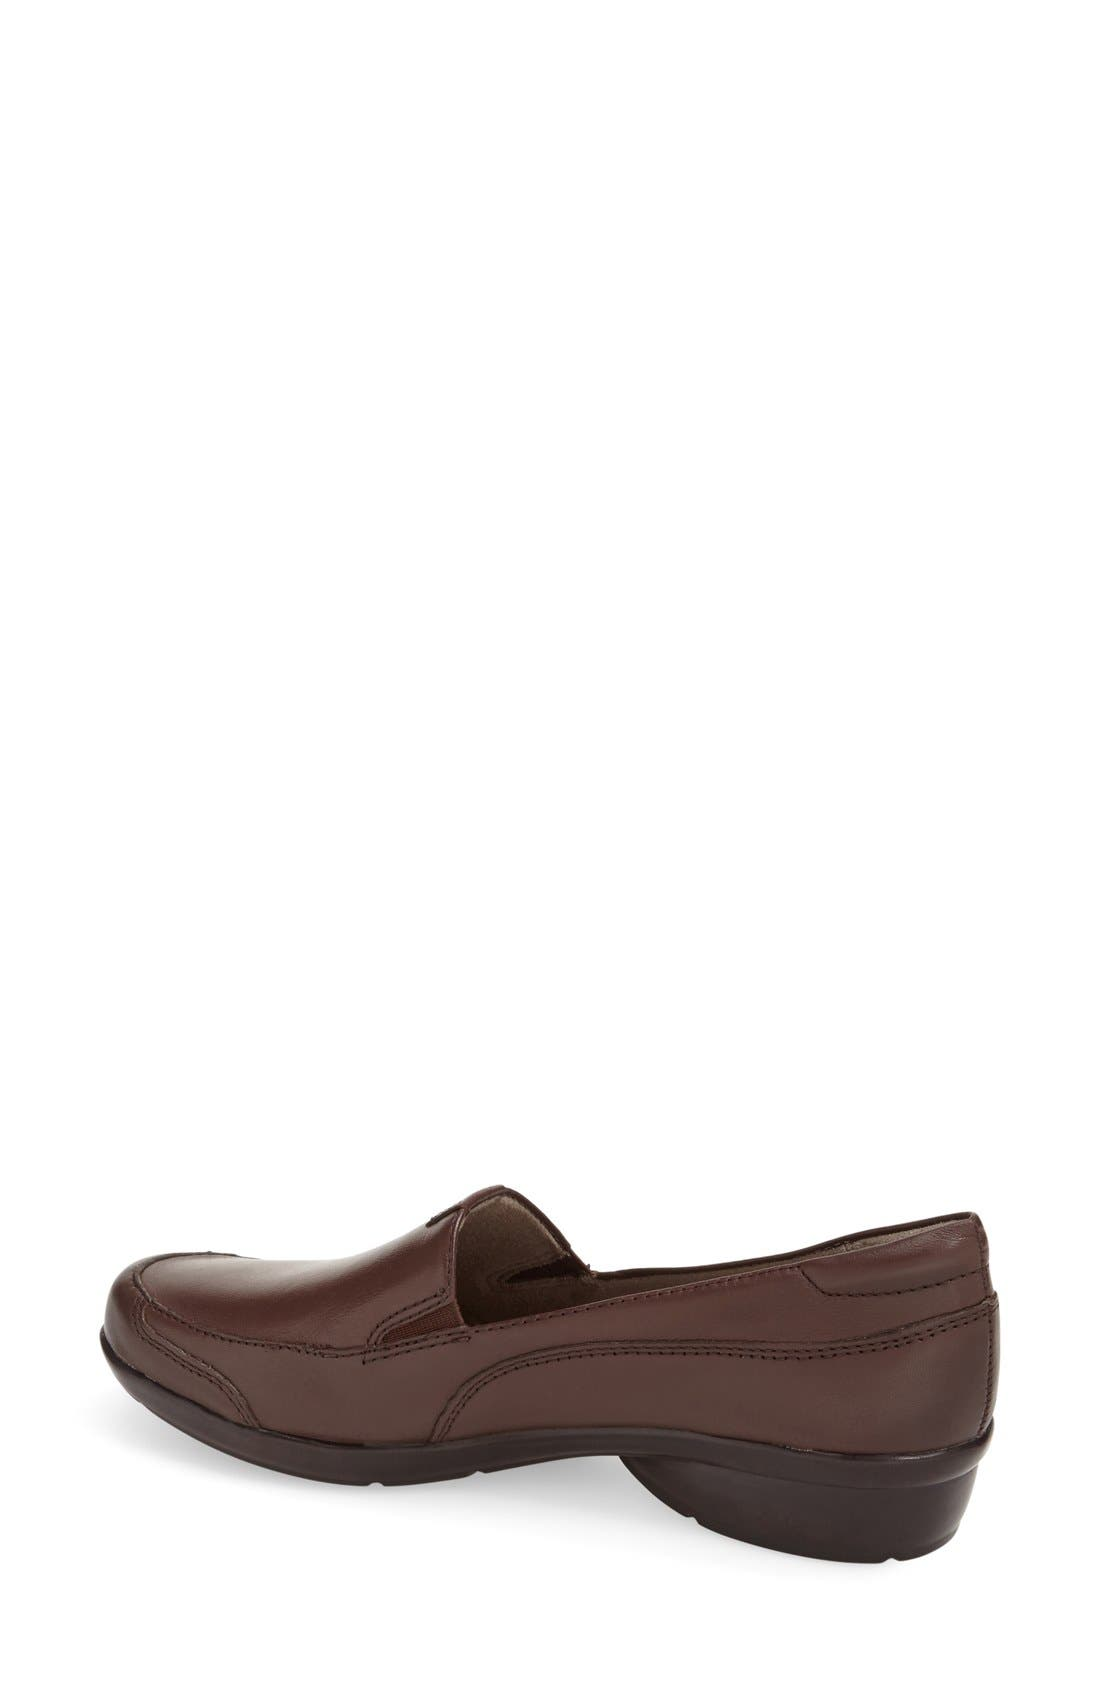 'Channing' Loafer,                             Alternate thumbnail 2, color,                             Bridal Brown